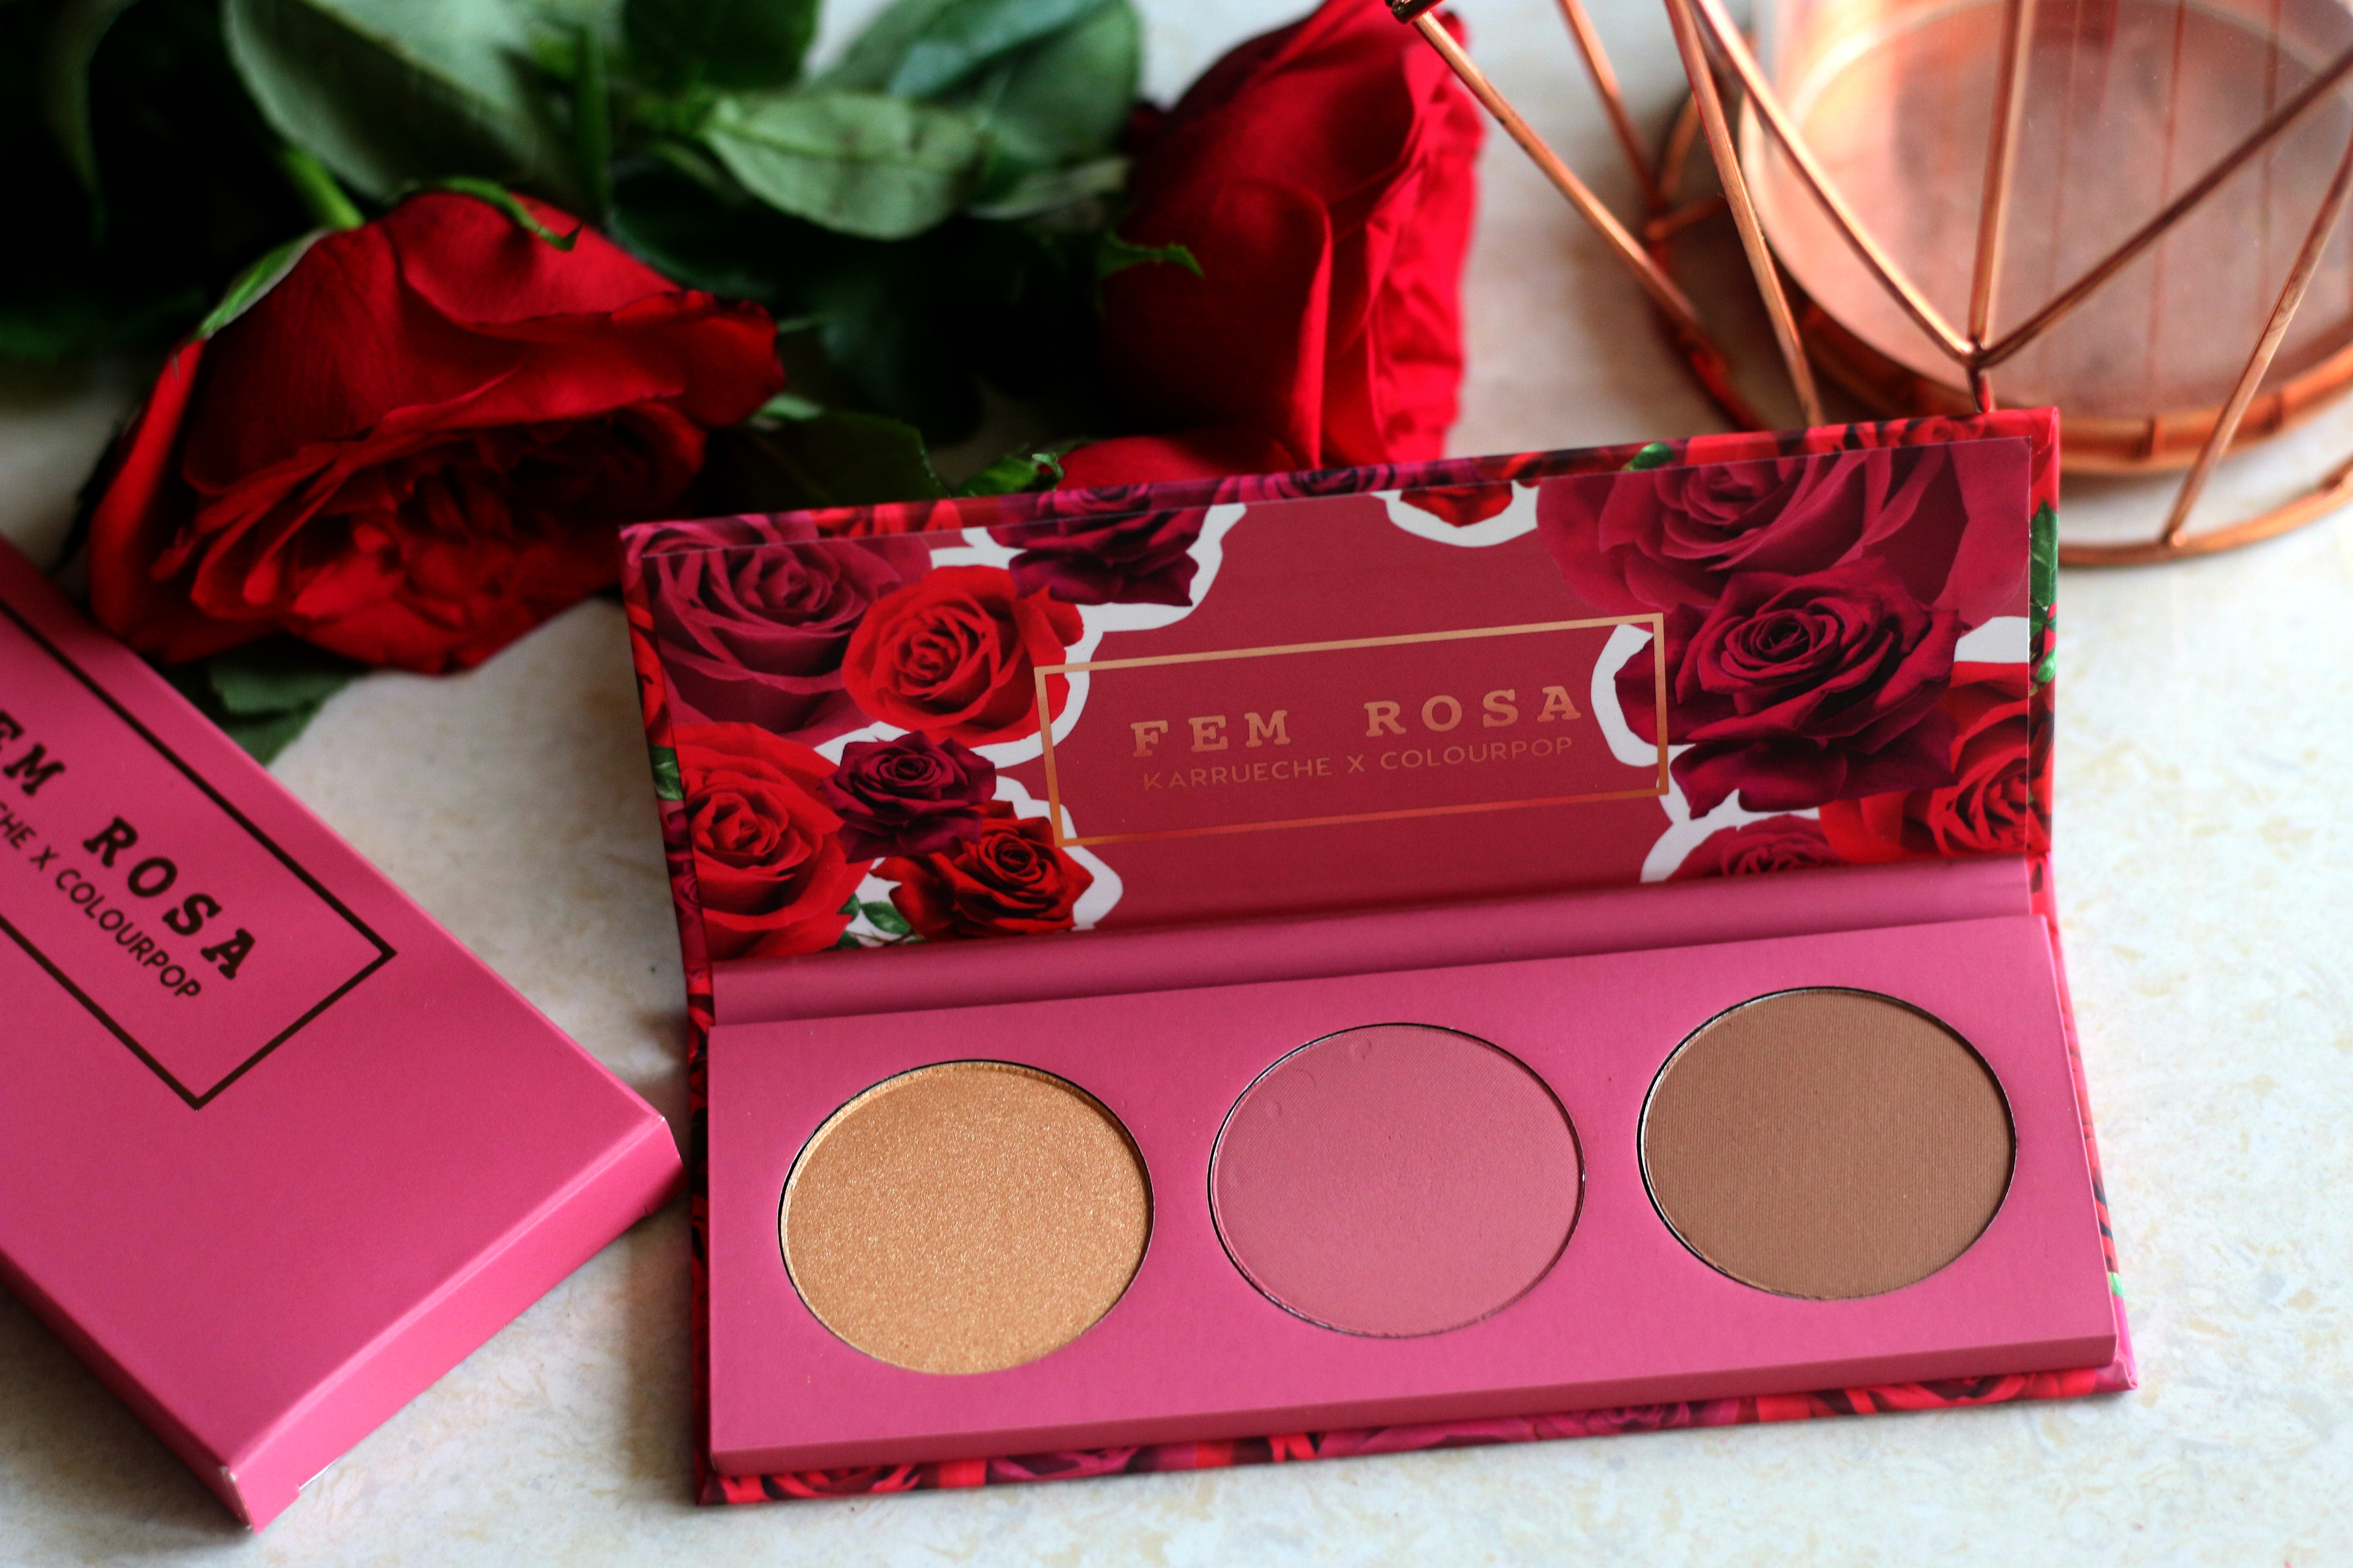 ColourPop Fem Rosa 'Her' Cheek Palette